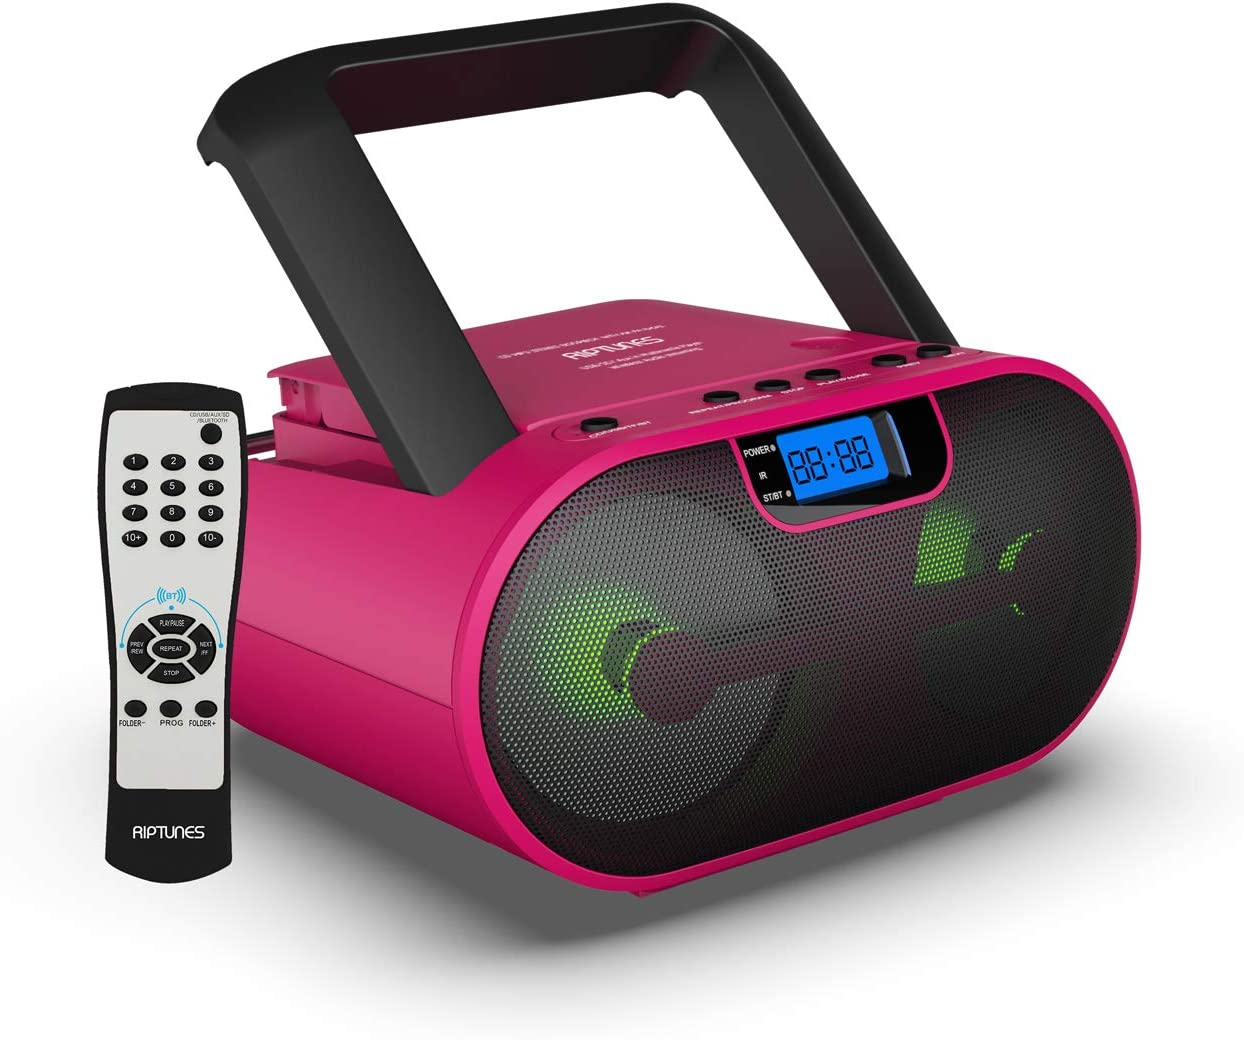 Riptunes CD Player Boombox Portable Radio AM/FM Digital Bluetooth Boombox MP3/CD, USB, mSD, Aux, Headphone Jack Stereo Sound System with Enhanced Bass, LED Lights, LCD Display with Remote, Pink